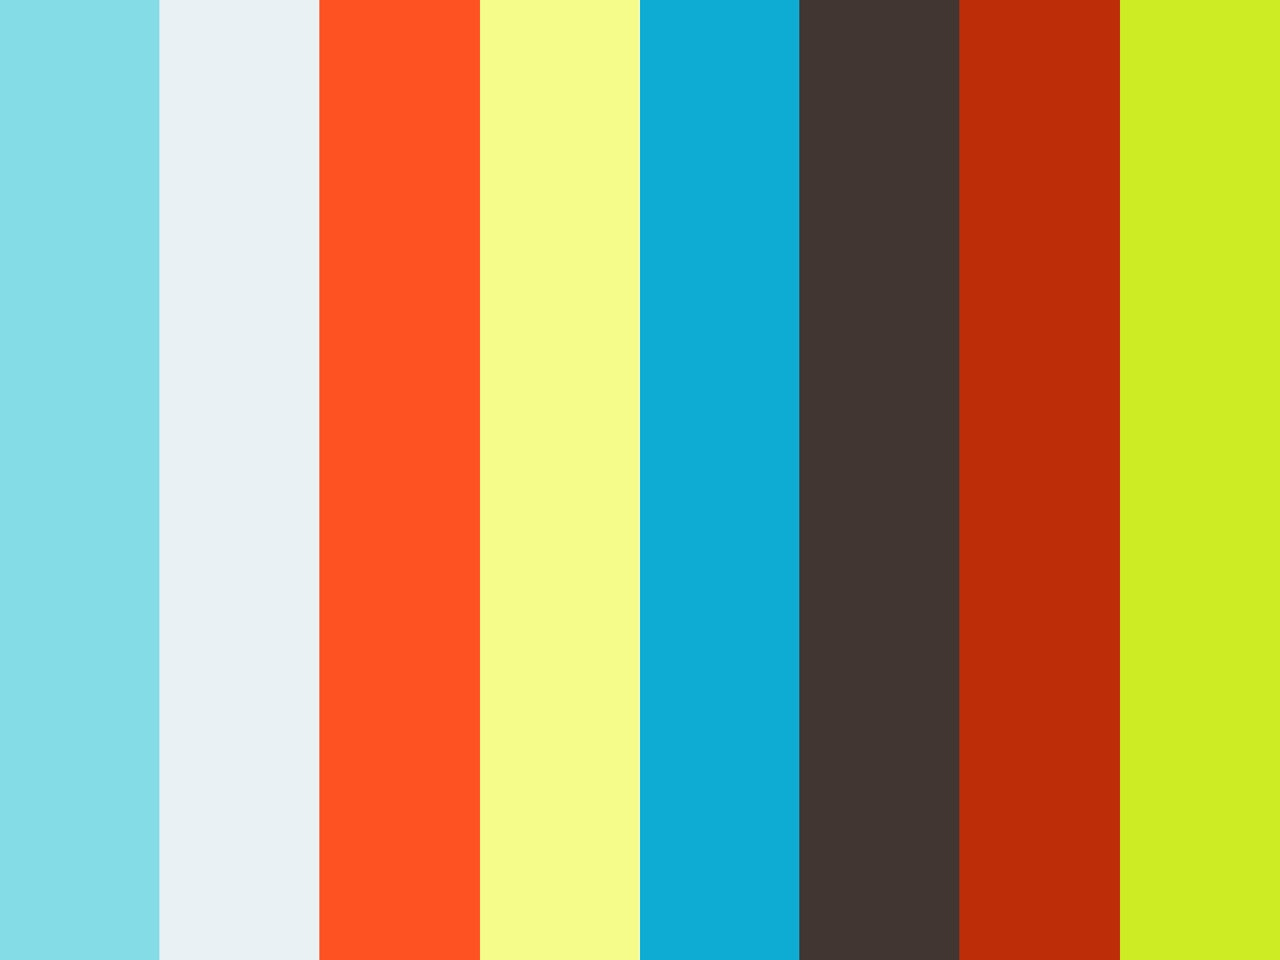 Temporary Disability benefits in New York